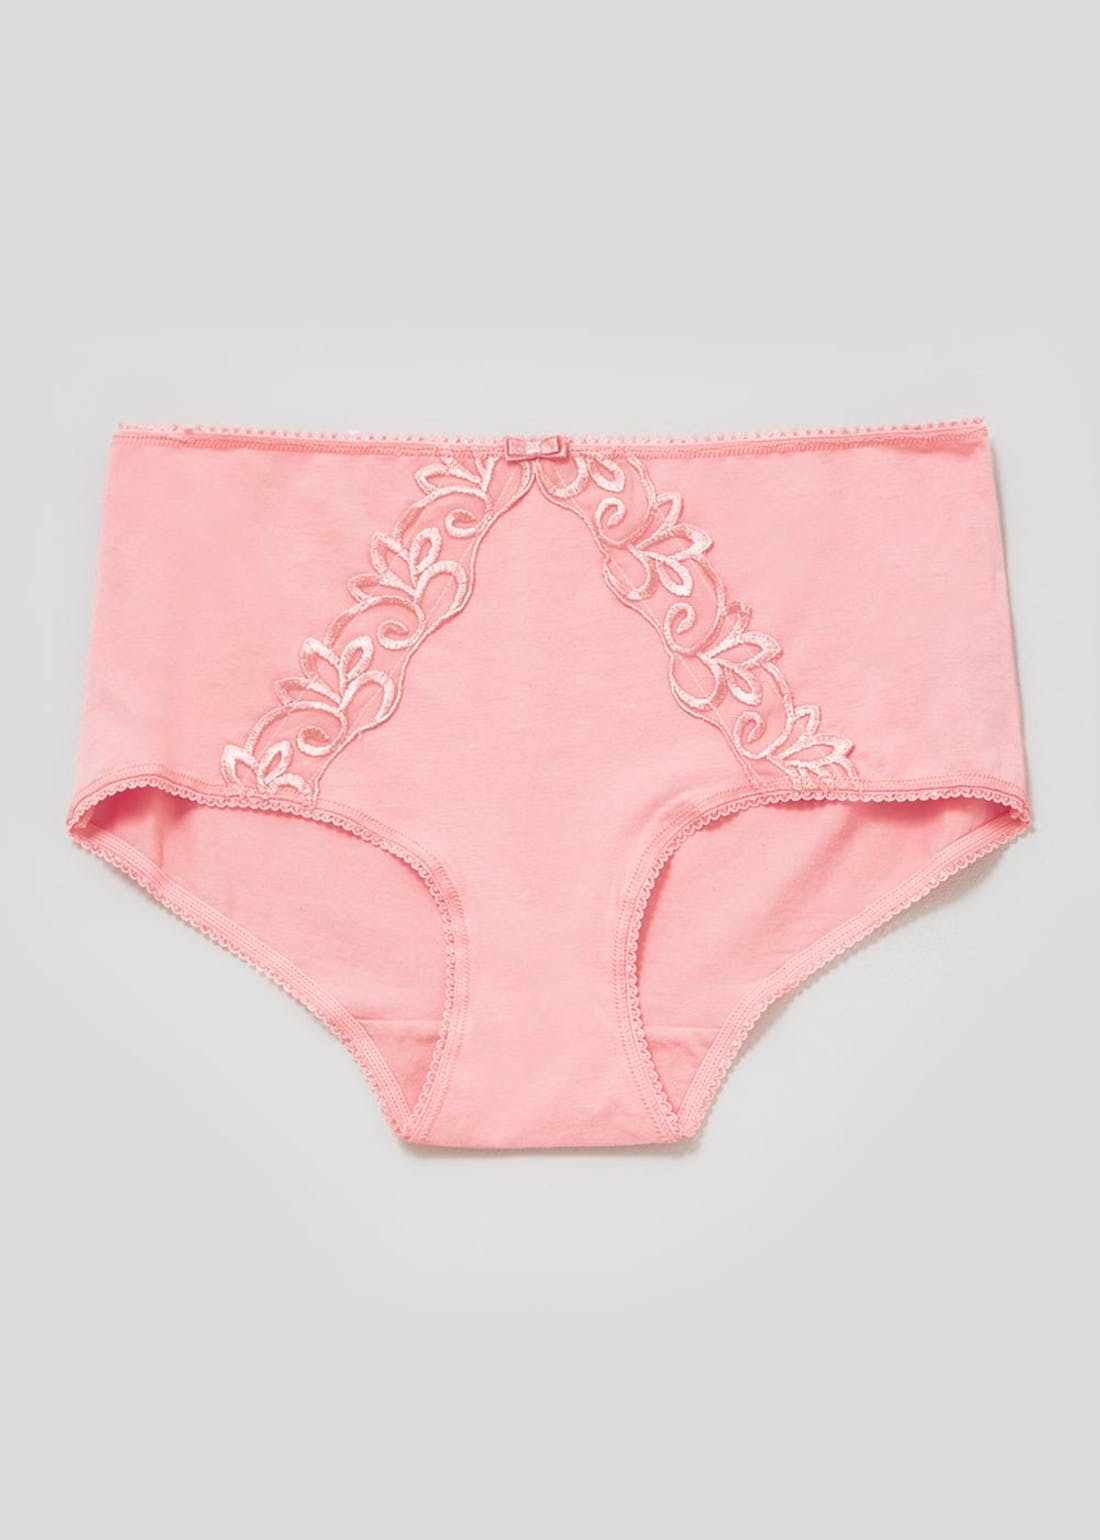 Embroidered Full Knickers